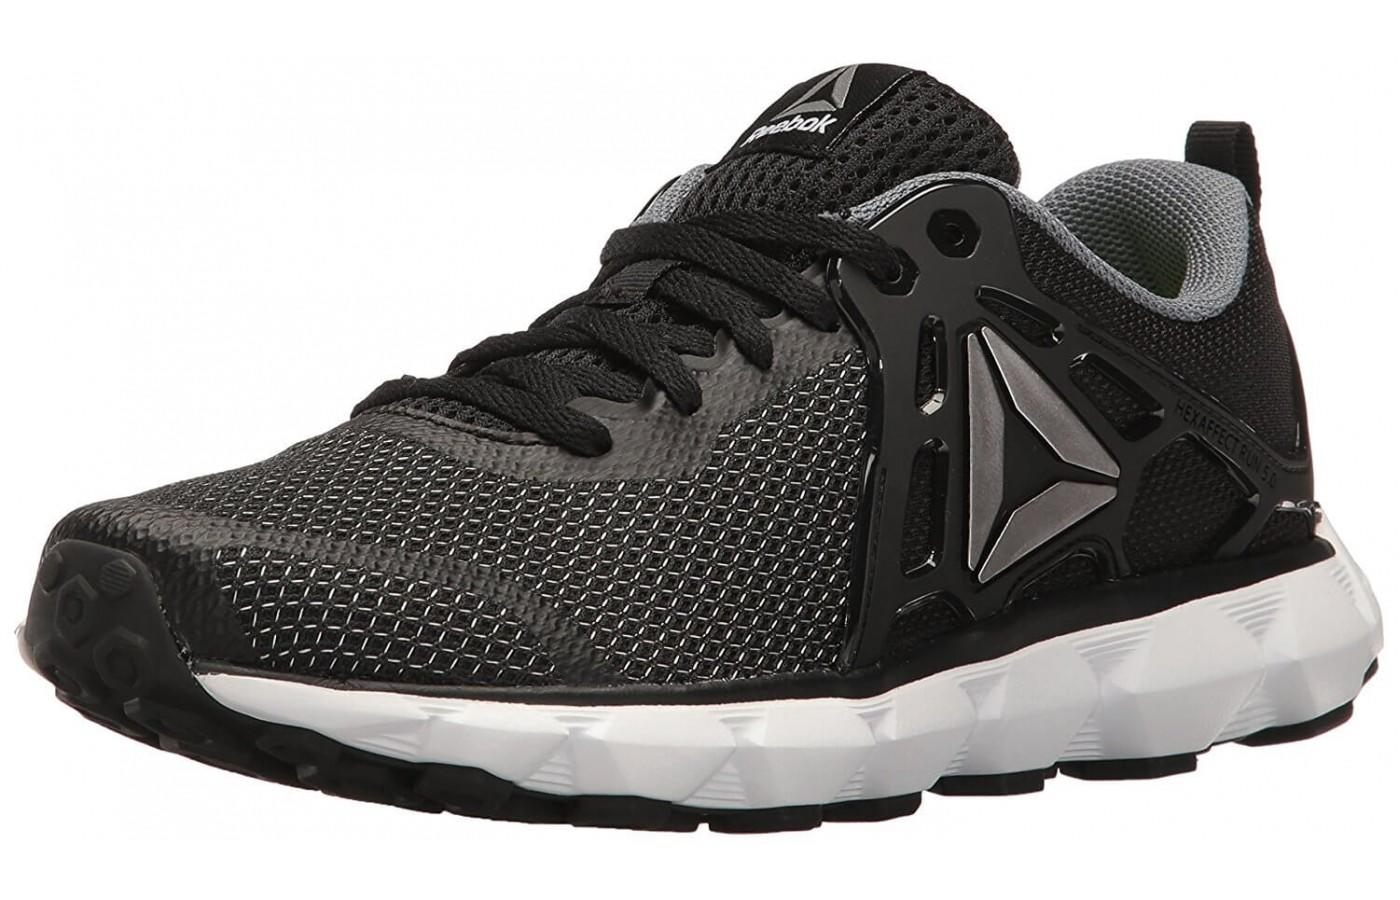 The Reebok Hexaffect Run 5.0 is a comfortable, cushioned shoe